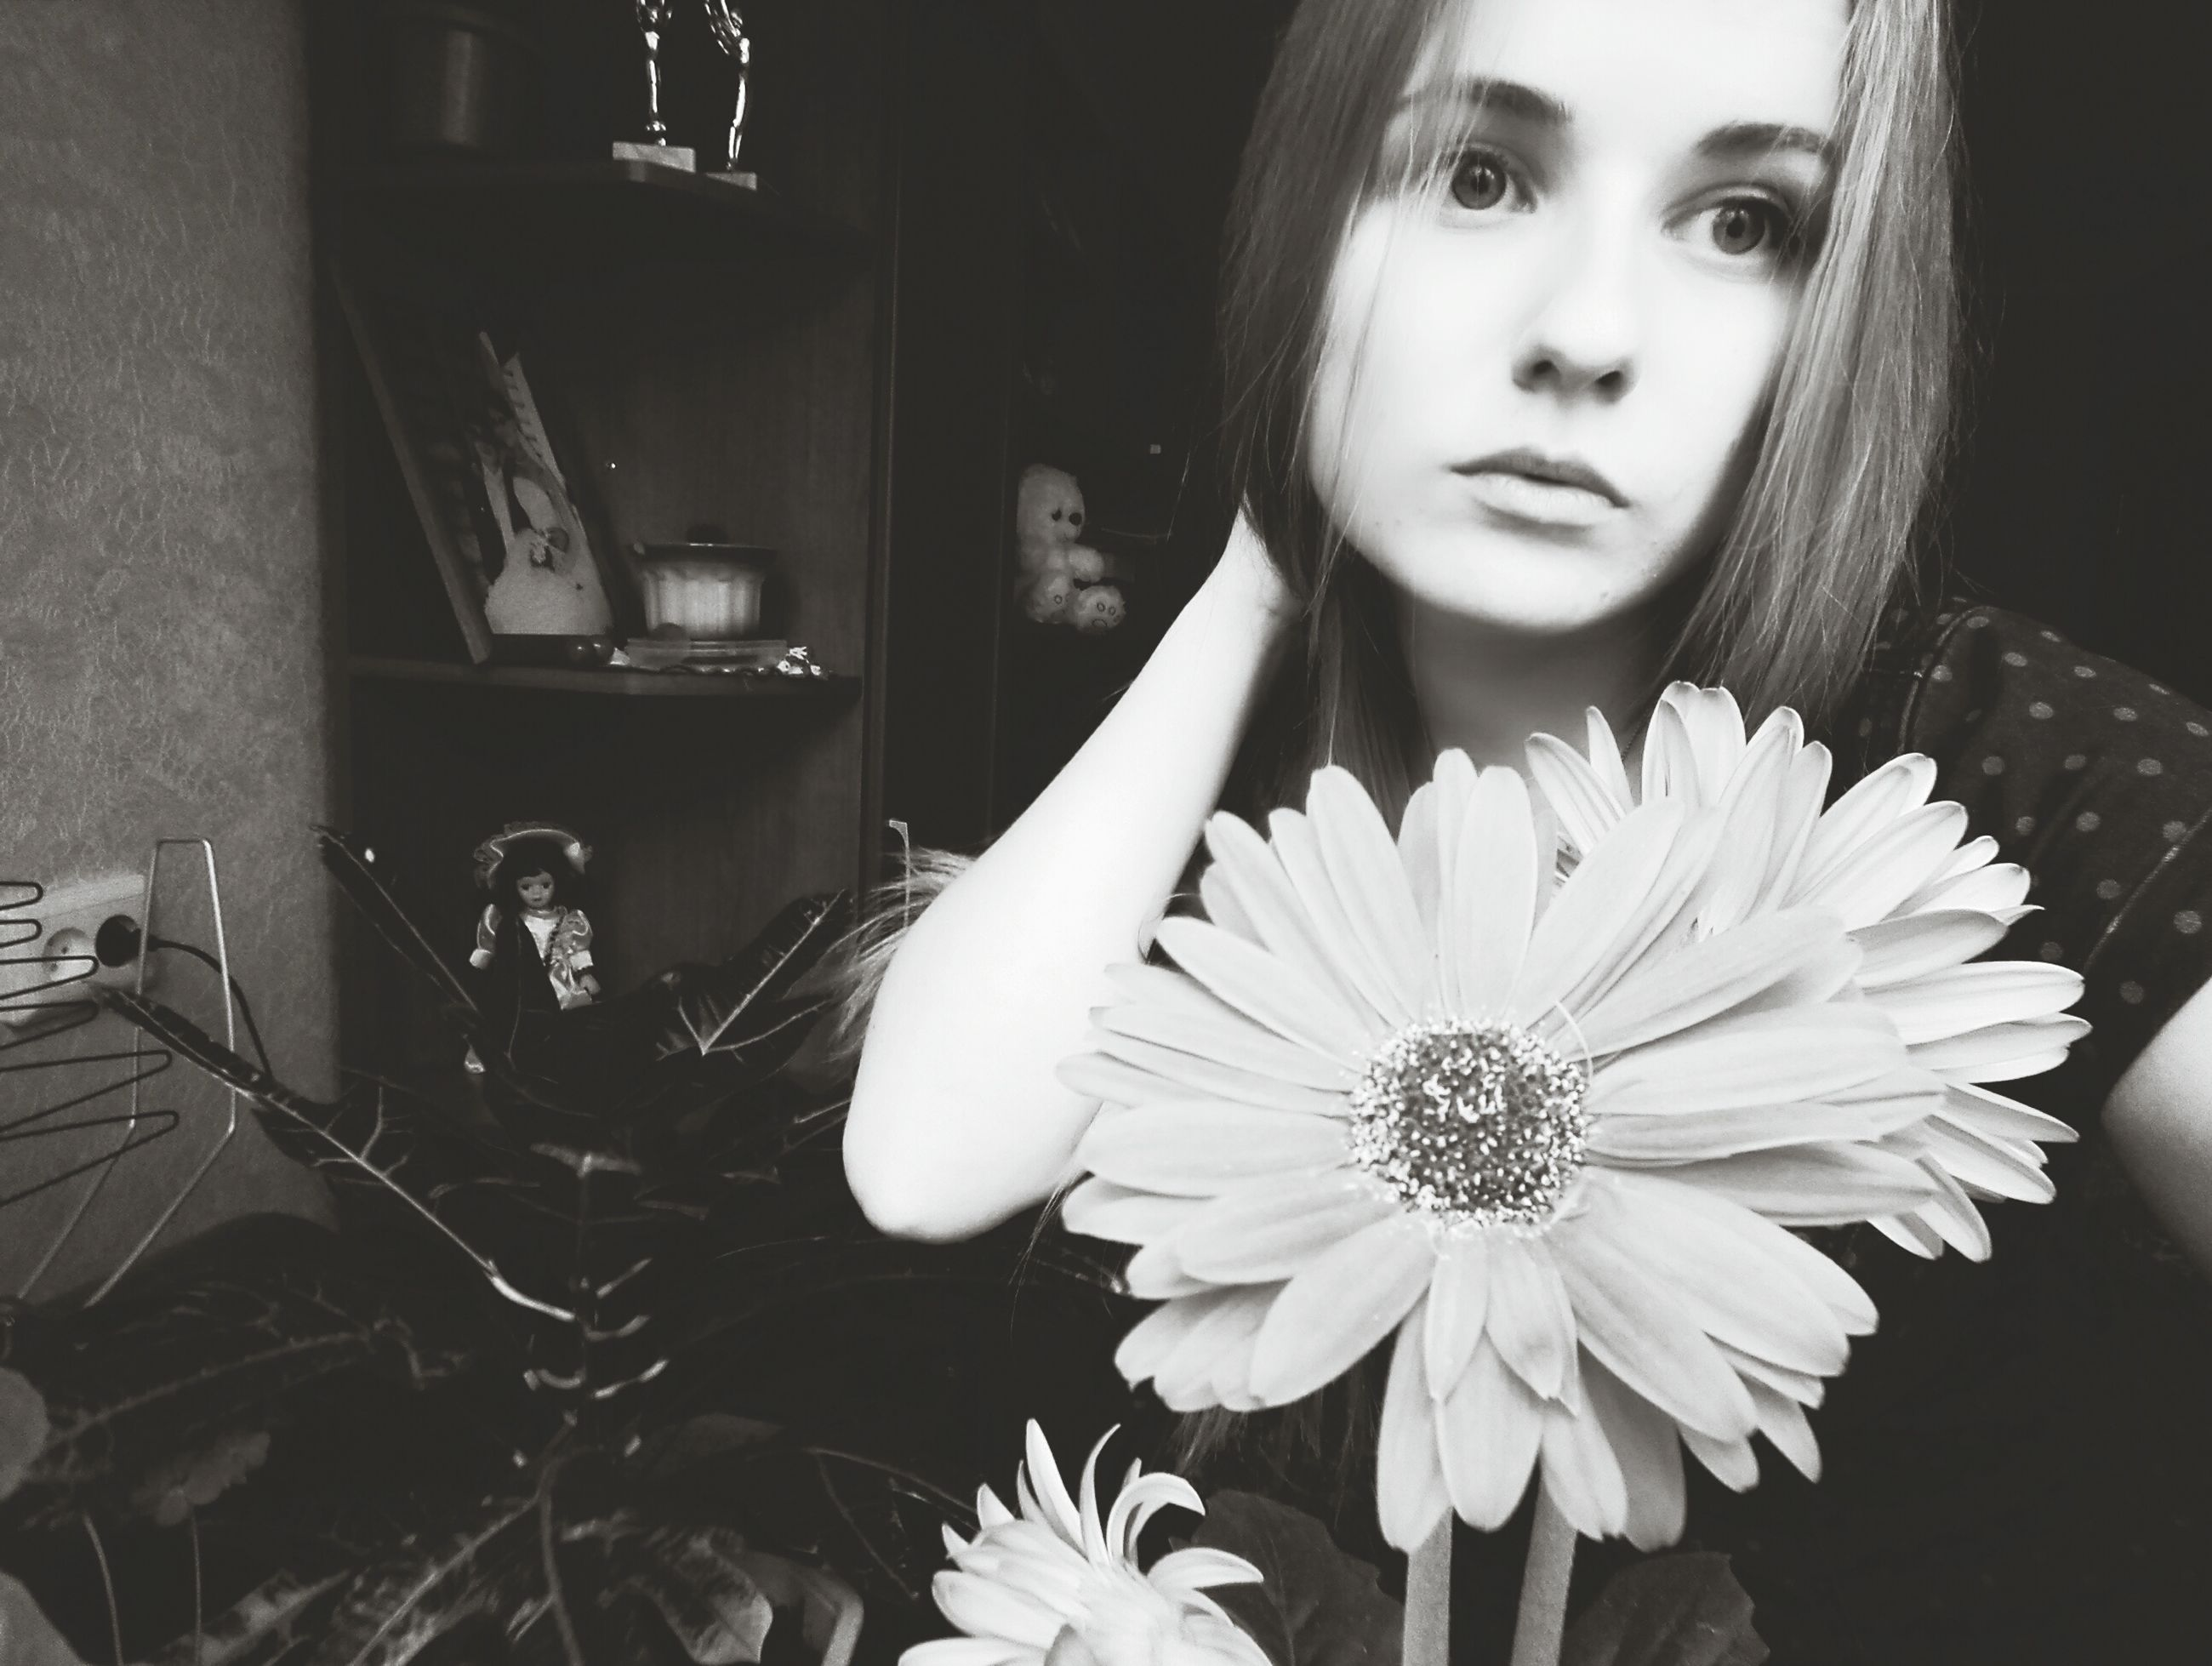 young adult, young women, person, flower, indoors, front view, looking at camera, lifestyles, portrait, casual clothing, holding, leisure activity, freshness, long hair, close-up, home interior, fragility